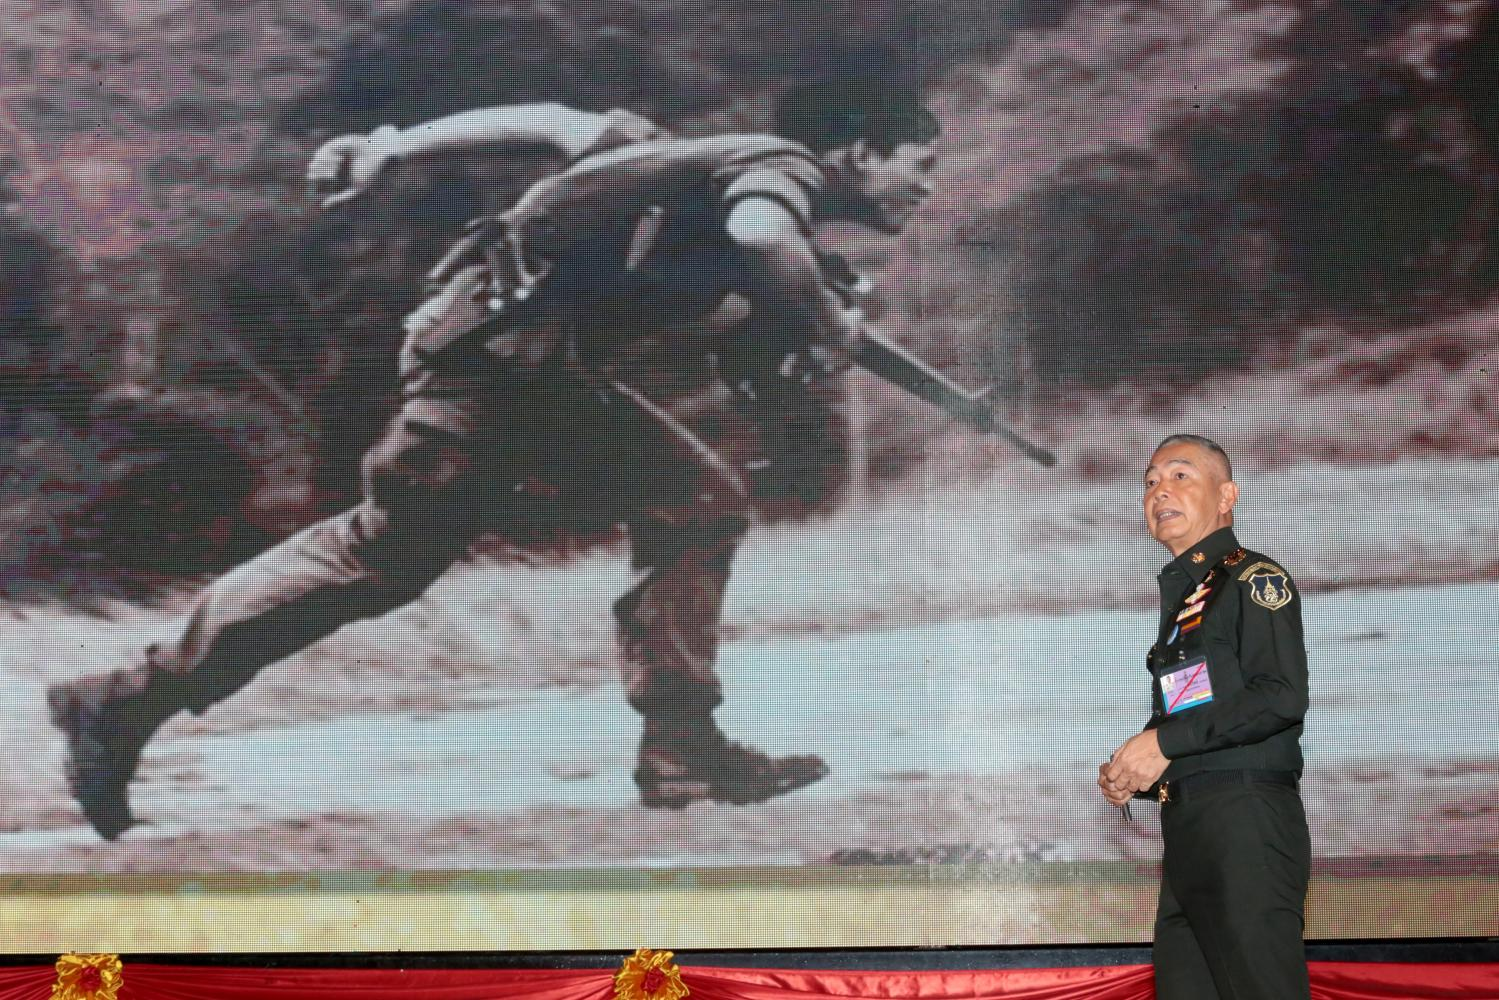 Army chief Gen Apirat Kongsompong describes how His Majesty the King fought against communists in Loei province in 1976, during a special lecture on national security at the Royal Thai Army Headquarters in Bangkok yesterday. Illustrating the lecture was a picture of the then-Crown Prince on the Loei battlefield. (Photo by Chanat Katanyu)